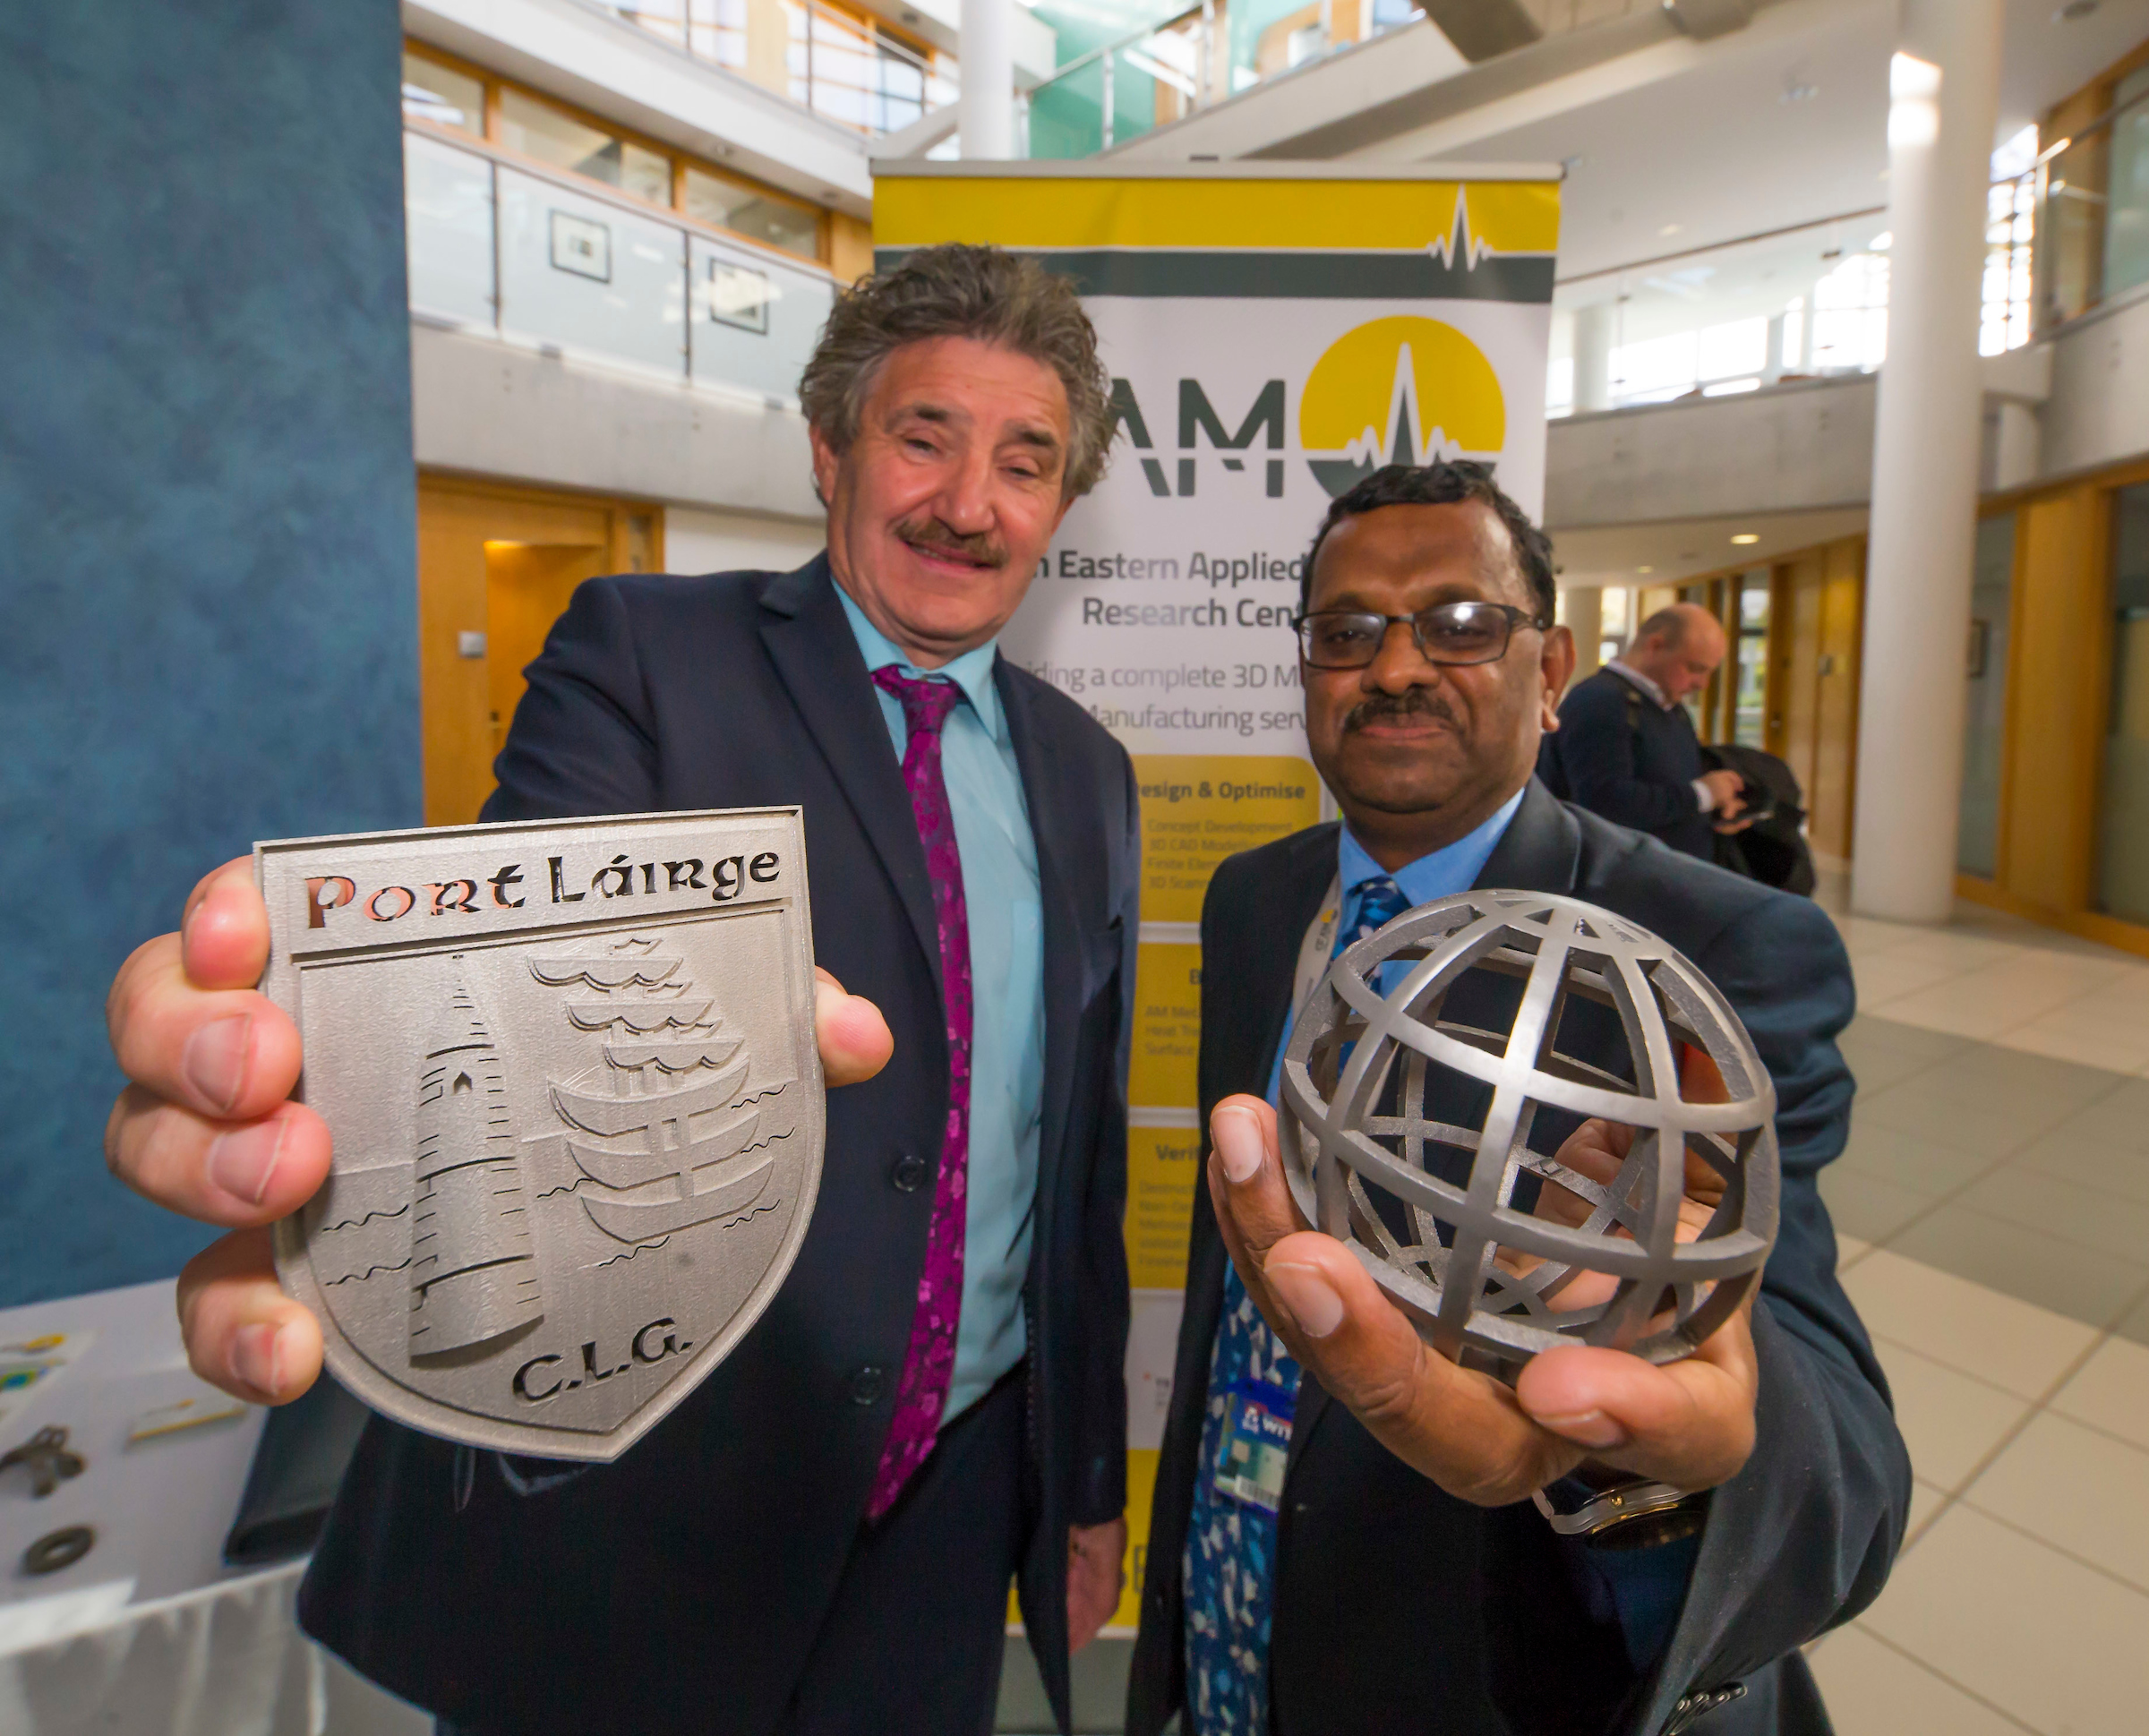 Minister John Halligan TD, Minister of State for Training, Skills, Innovation, Research and Development and WIT's Dr Ramesh Raghavendra, SEAM Centre Director & Technology Gateway Manager with some 3D printed items from SEAM